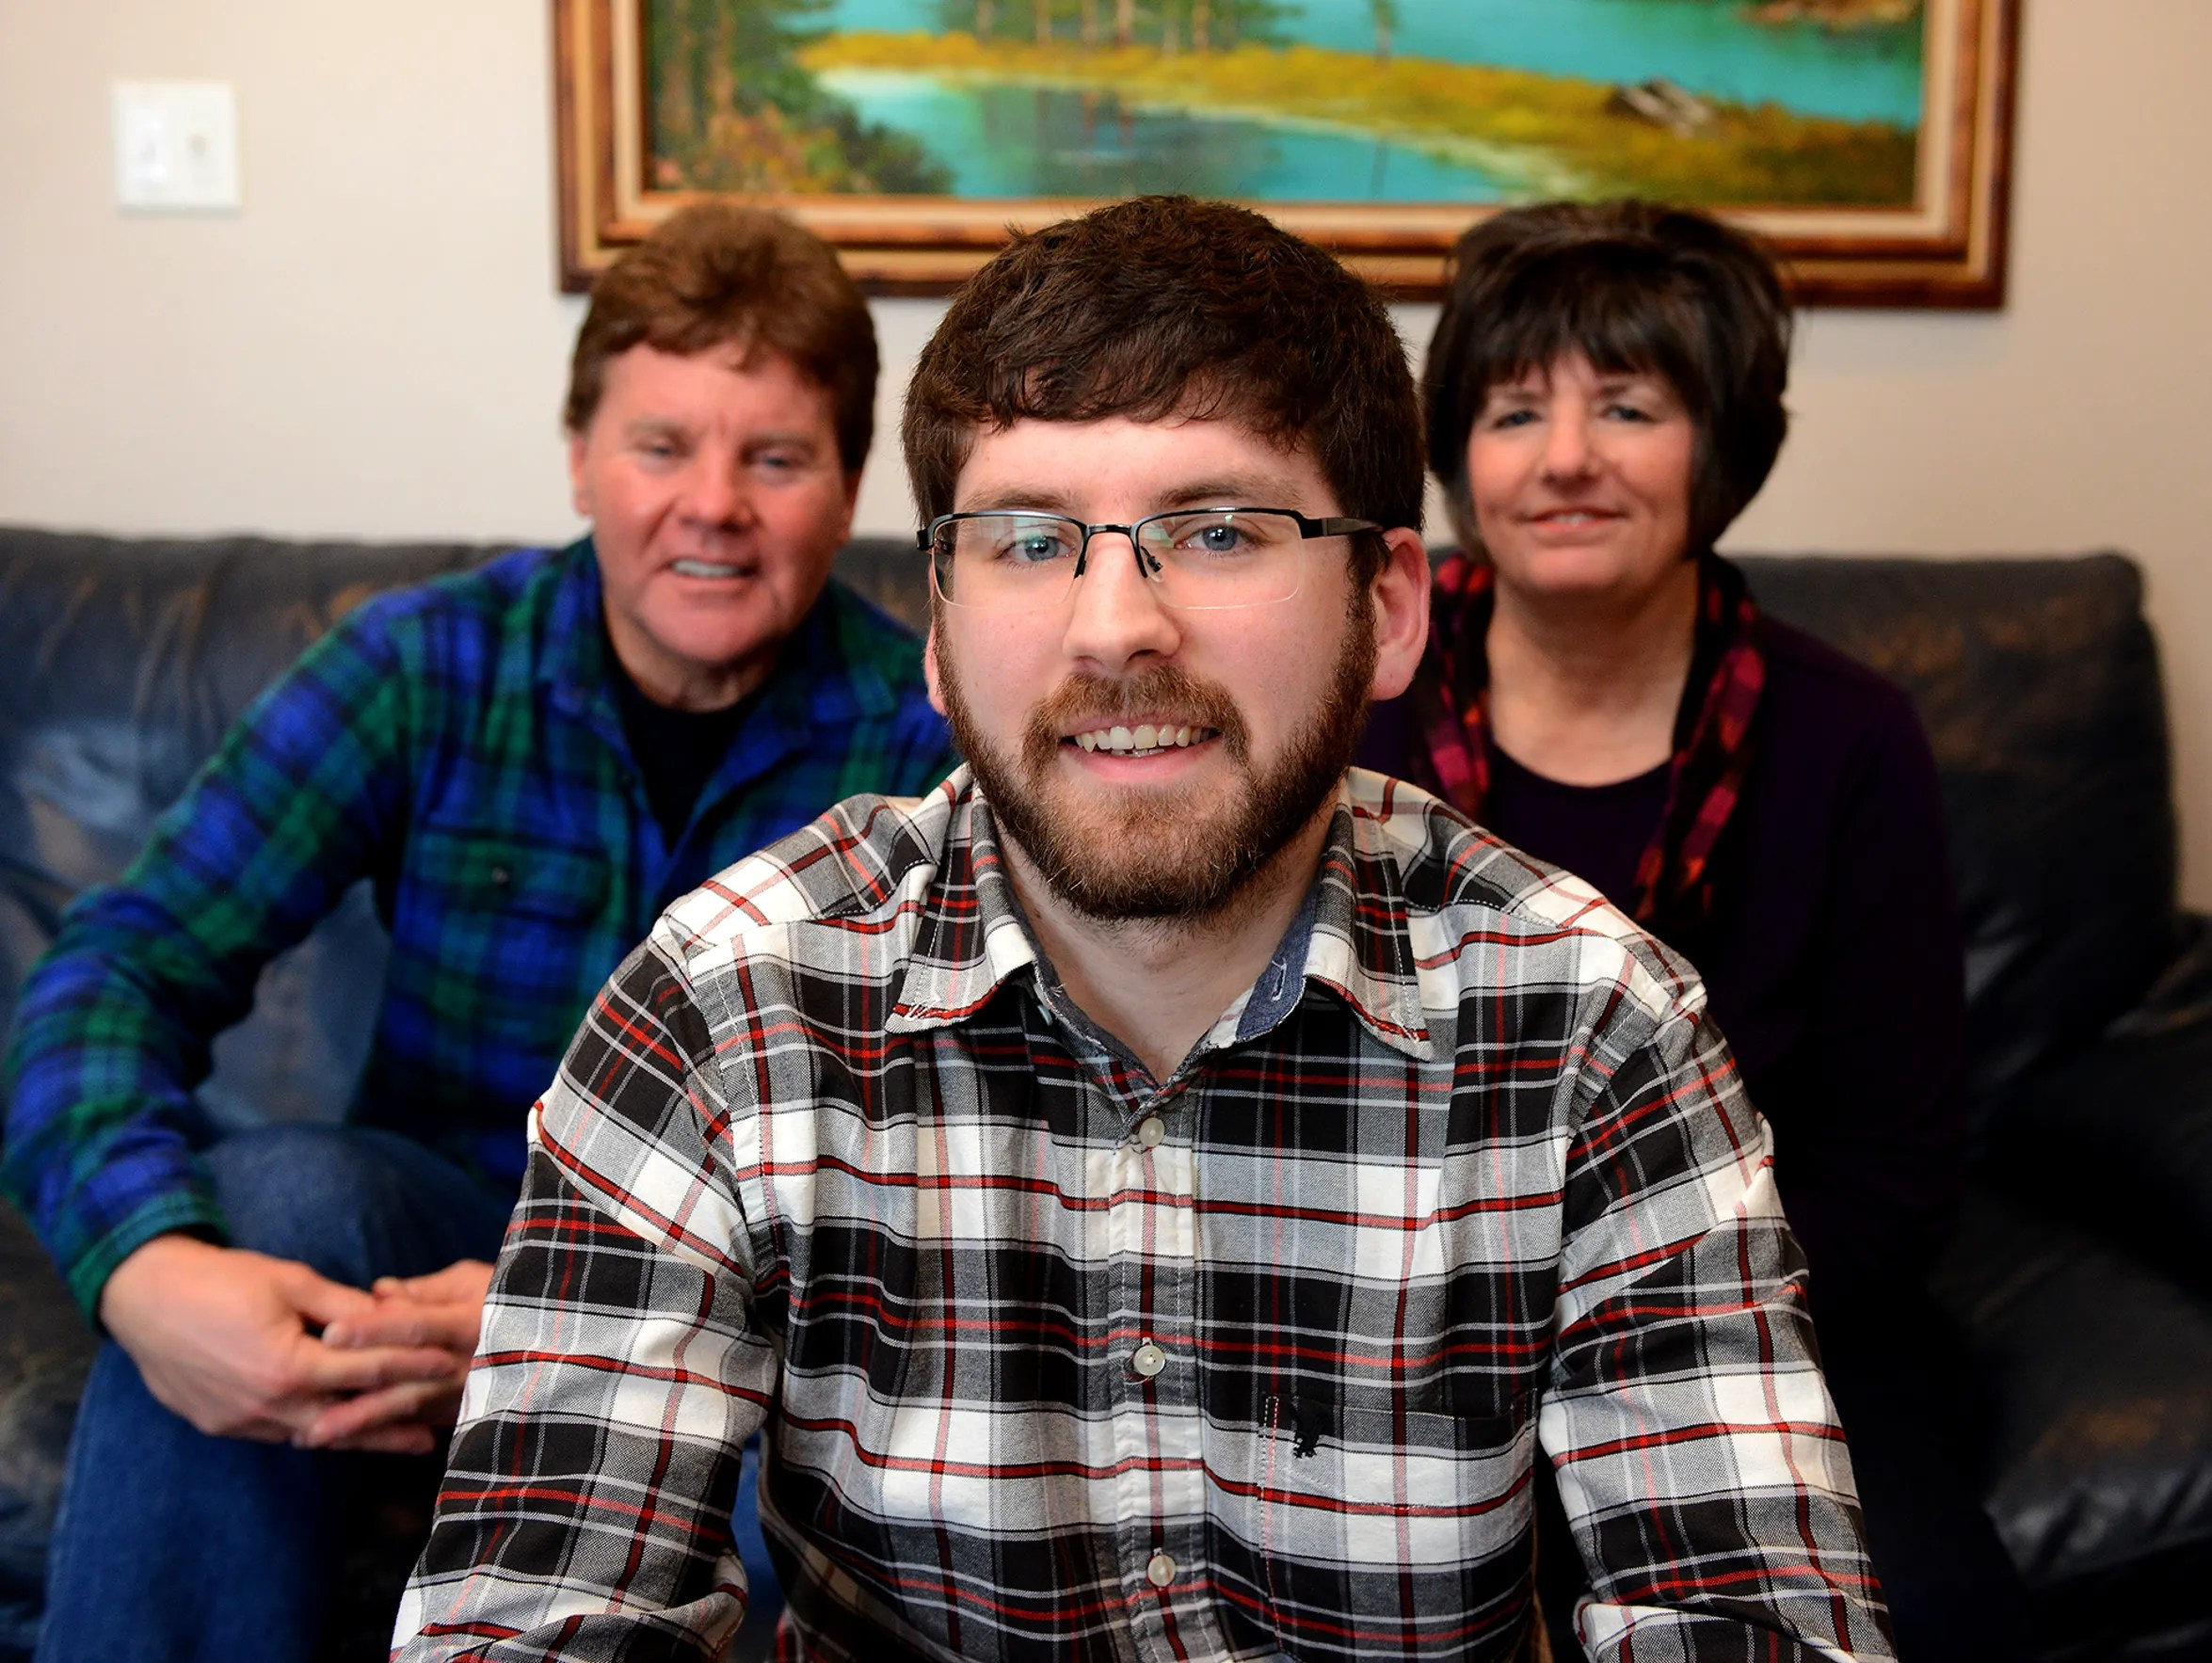 Aaron Emerson, 24, sits with his parents Wes and Rhonda,